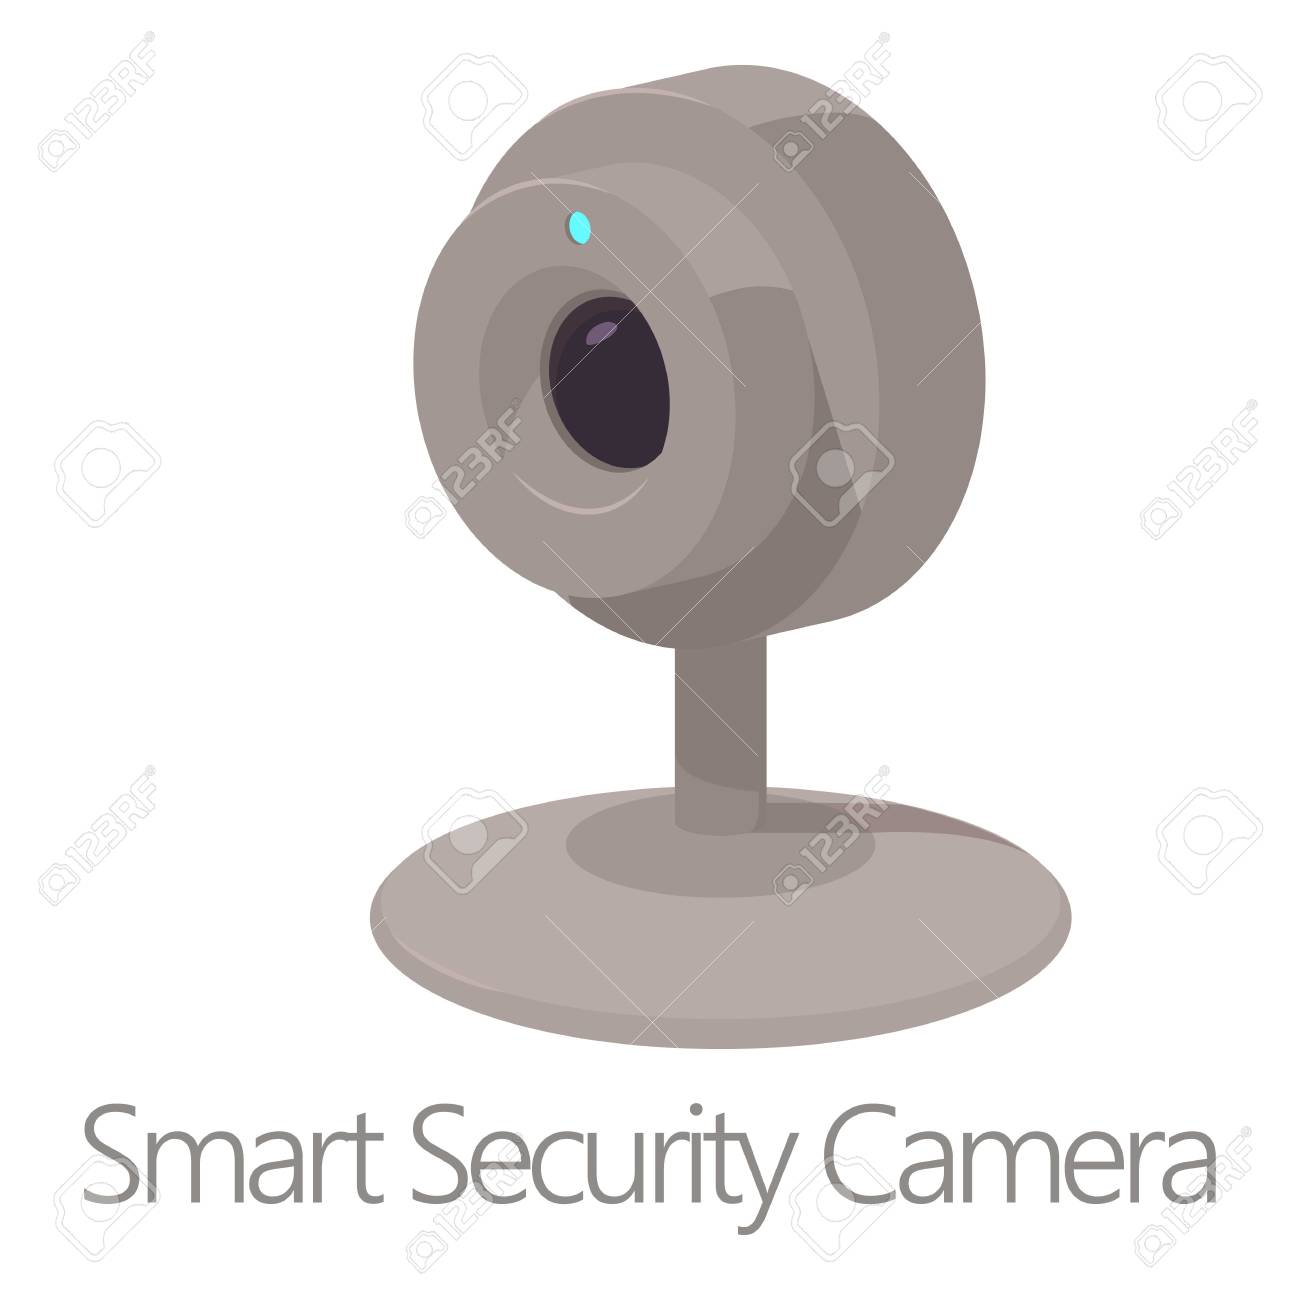 Smart Security Camera Icon Cartoon Style Royalty Free Cliparts